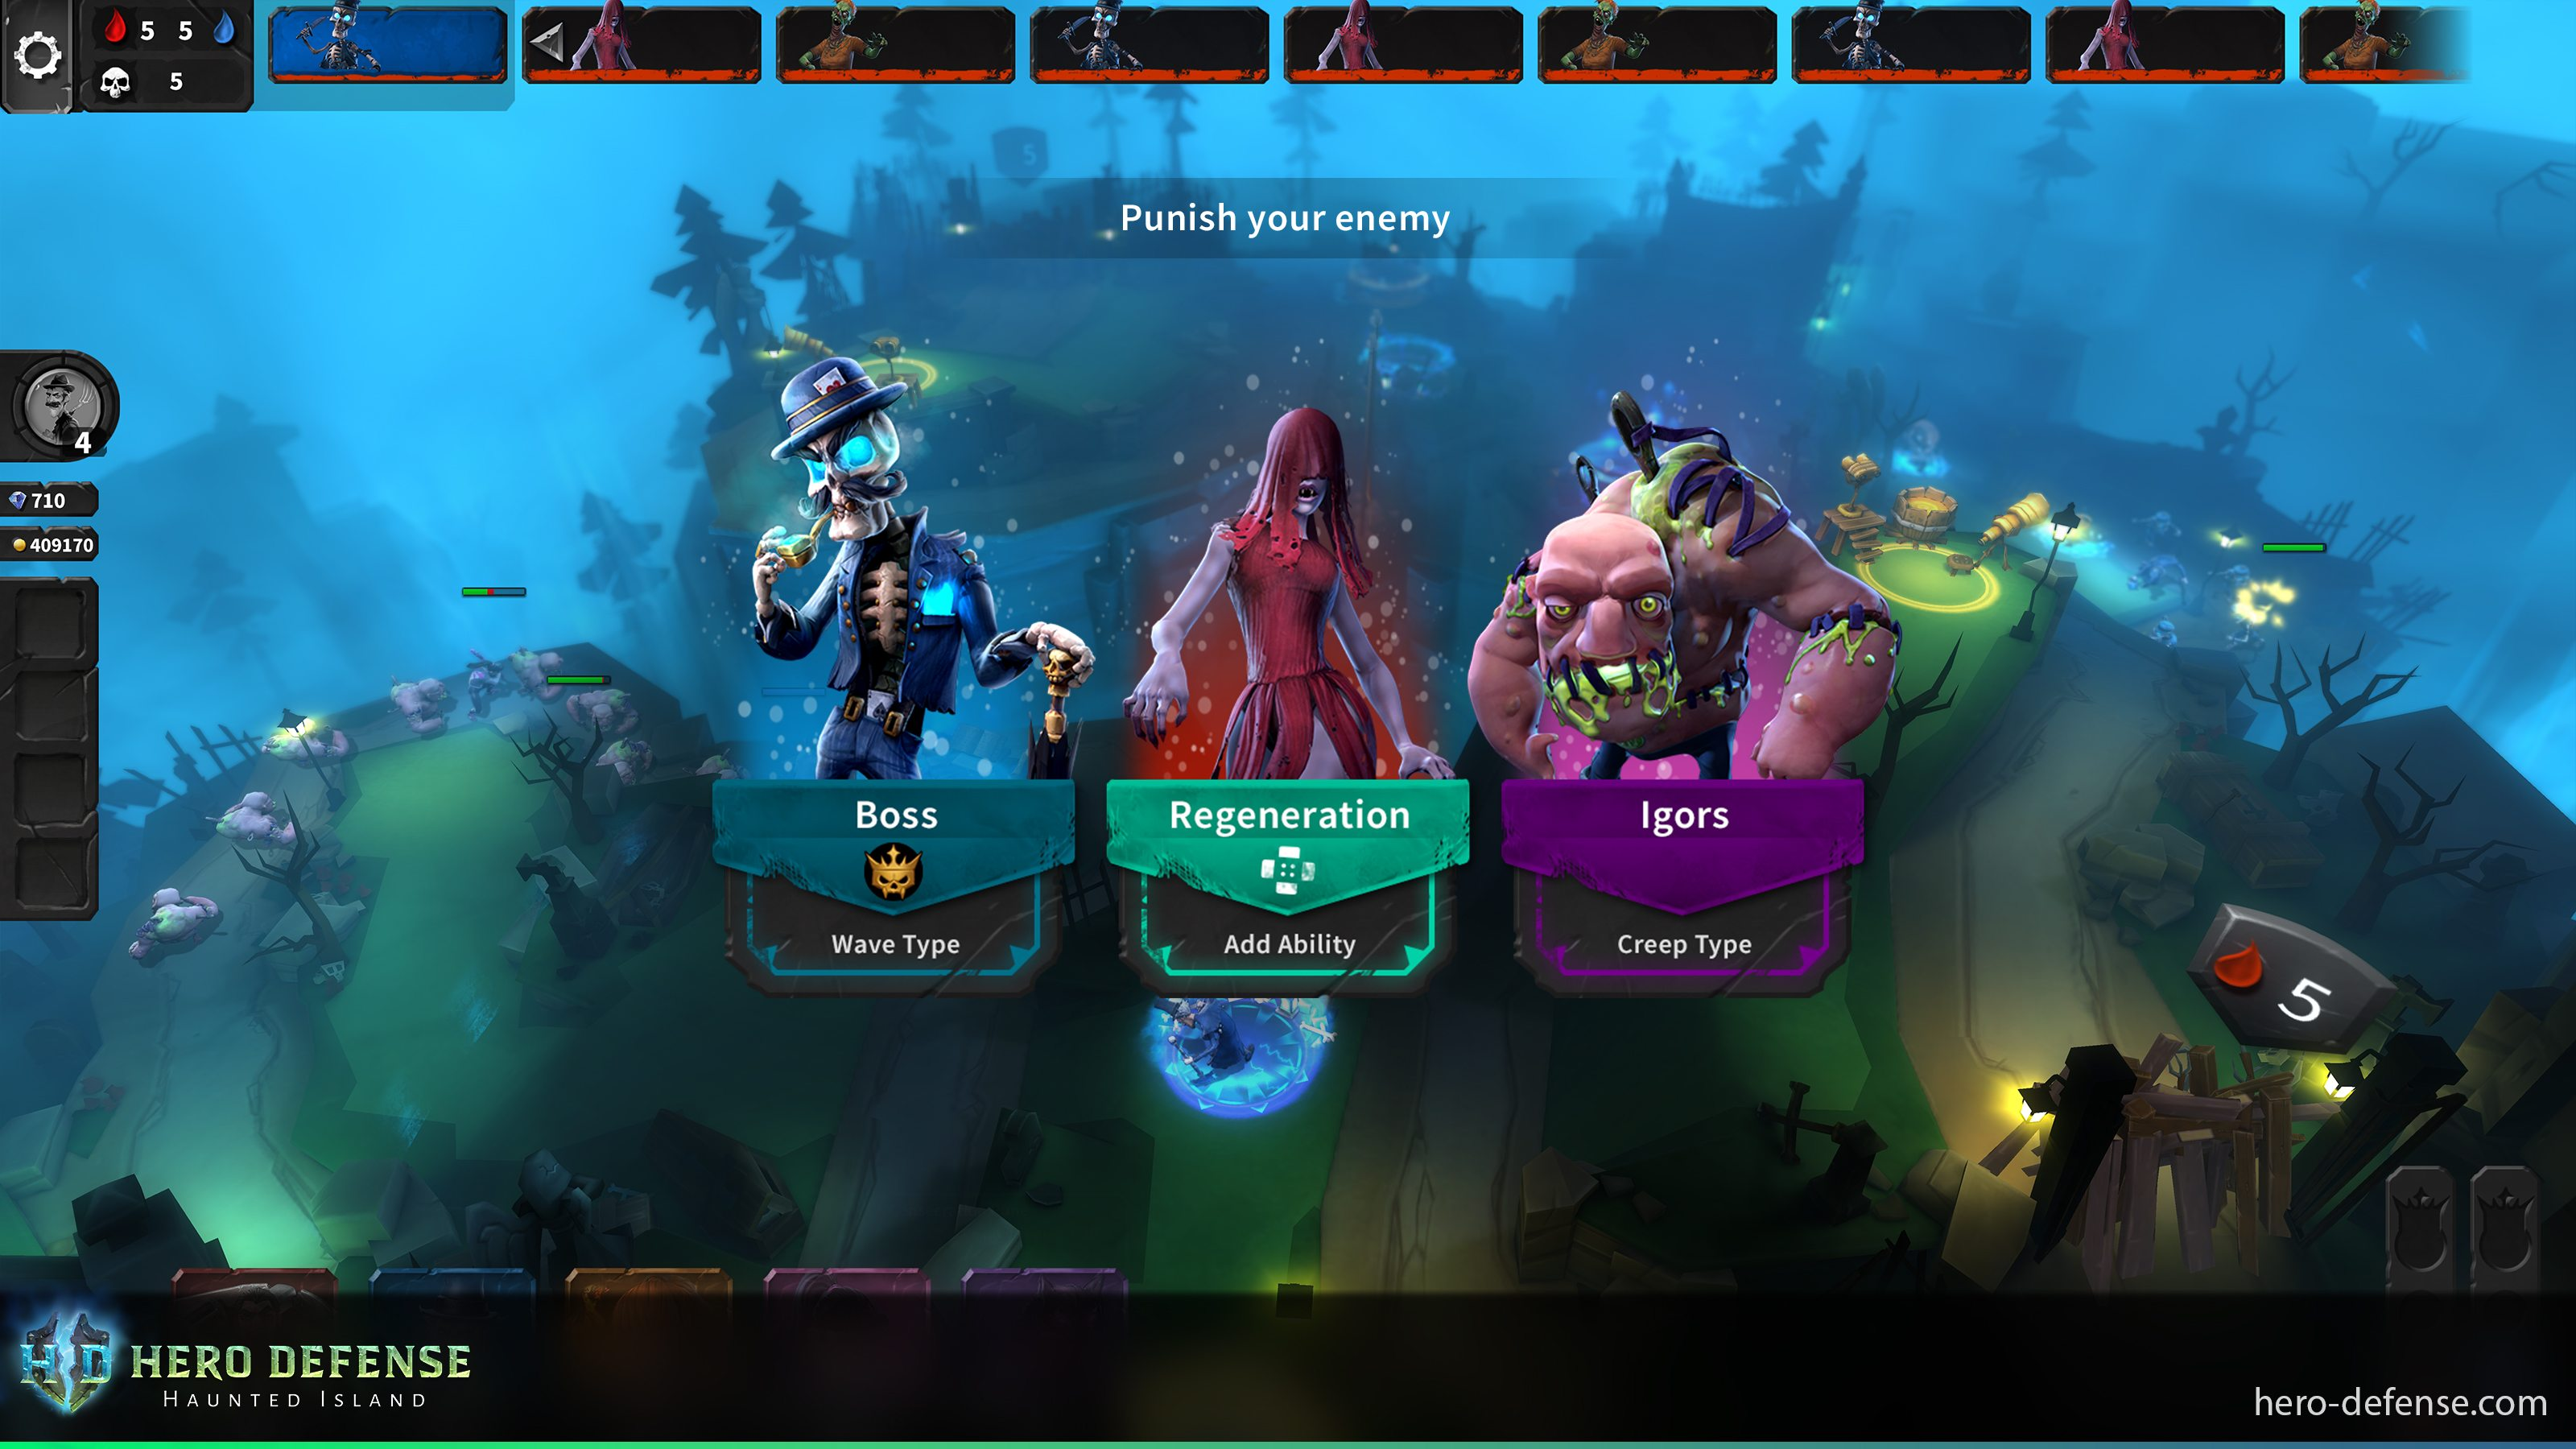 Hero Defense - Haunted Island Multiplayer Update Now Available